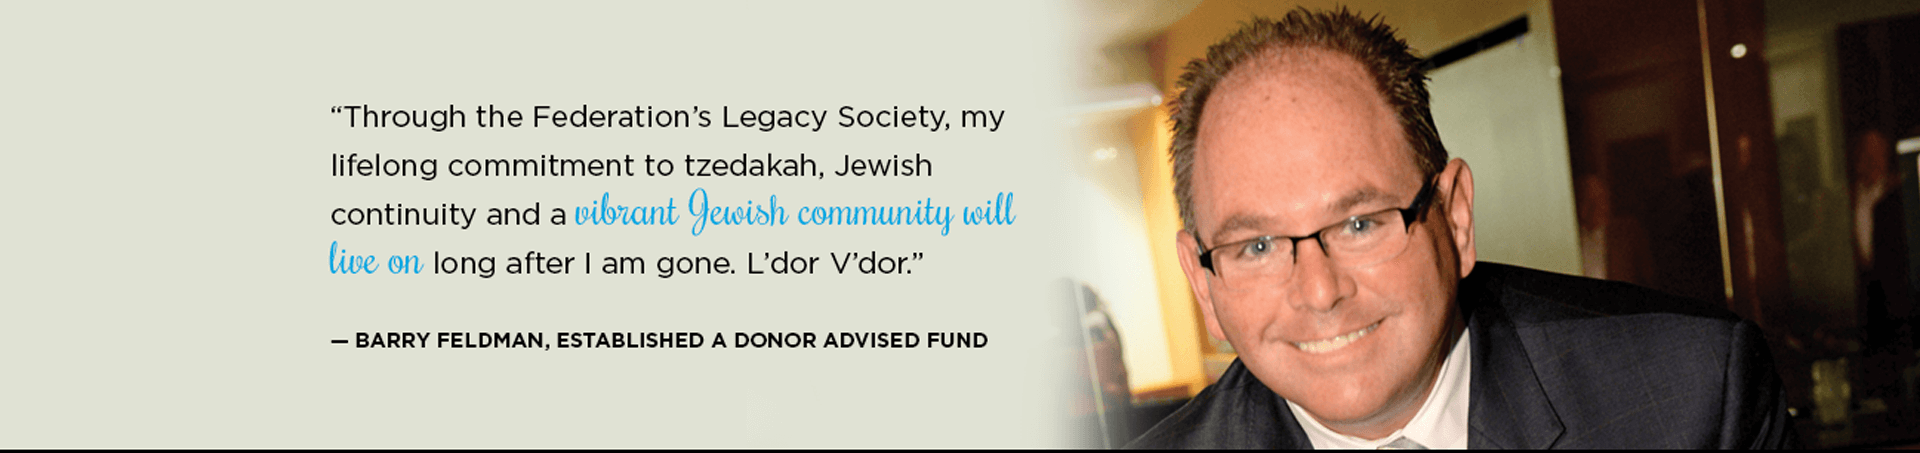 """Through the Federation's Legacy Society, my lifelong commitment to tzedakah, Jewish continuity and a vibrant Jewish community will live on long after I am gone. L'dor V'dor"" - Barry Feldman, Established a Donor Advised Fund"